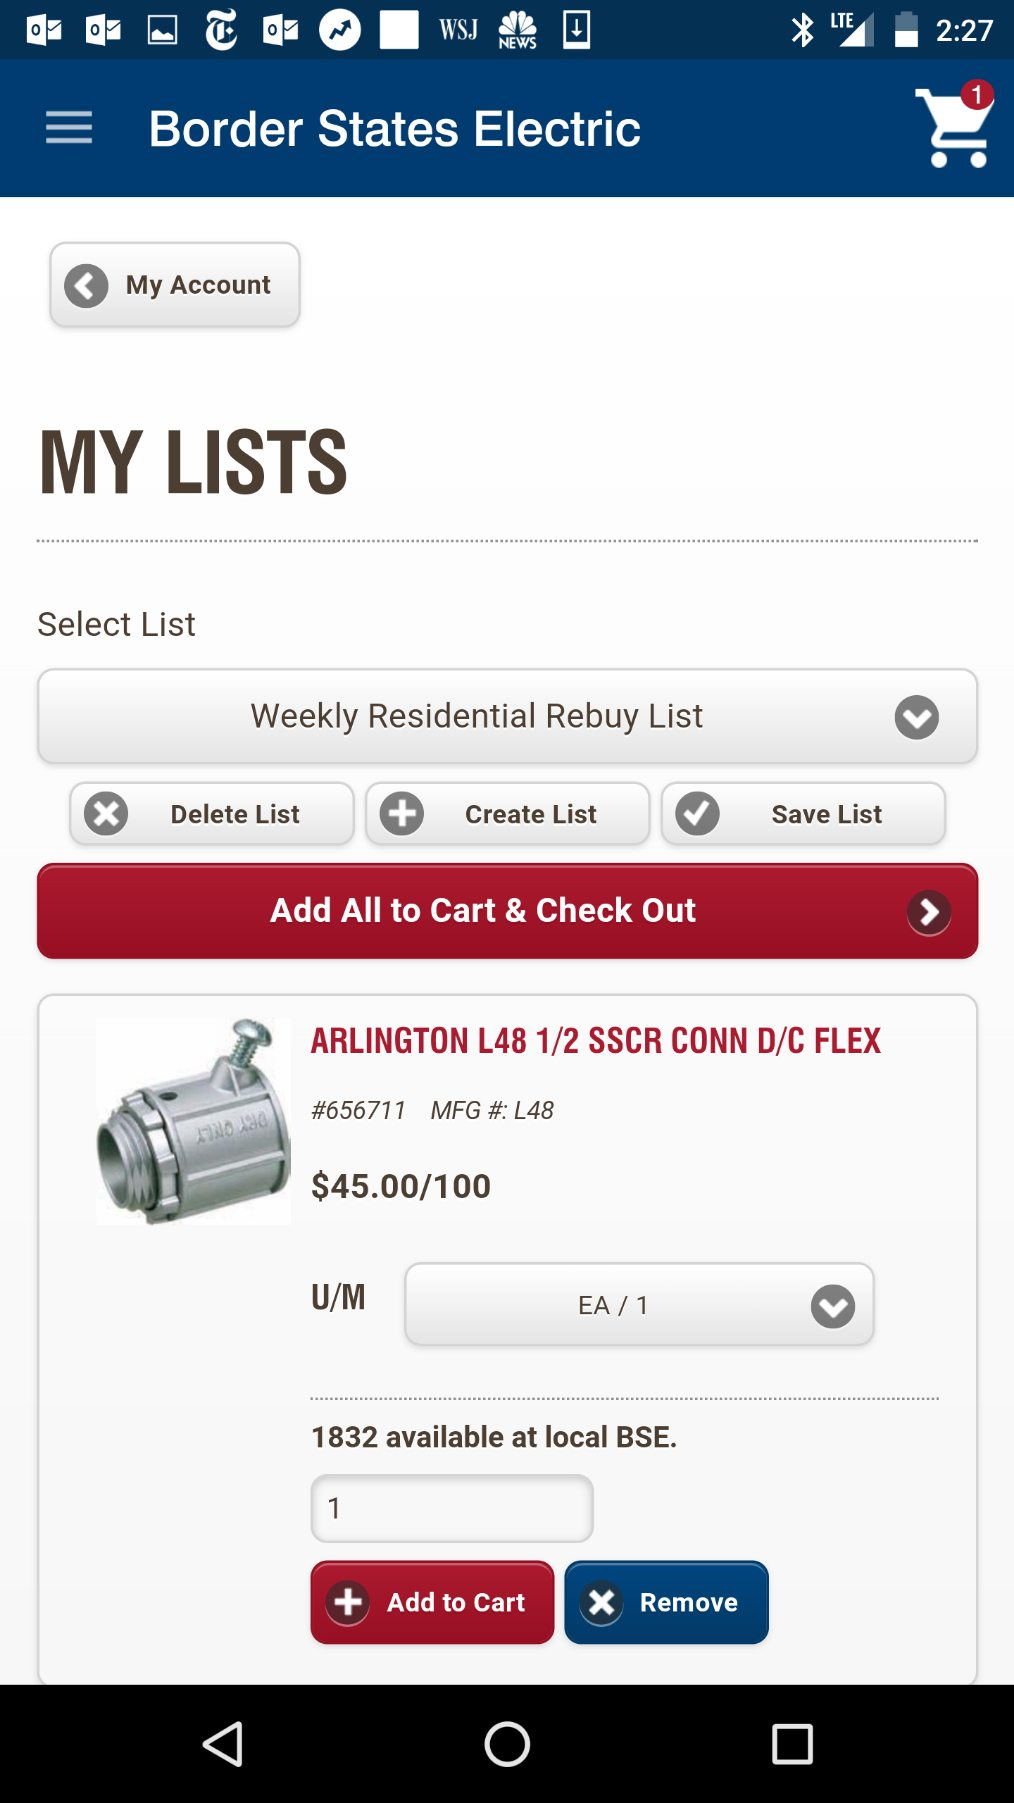 Order your regular materials in seconds with Border States 'My Lists'